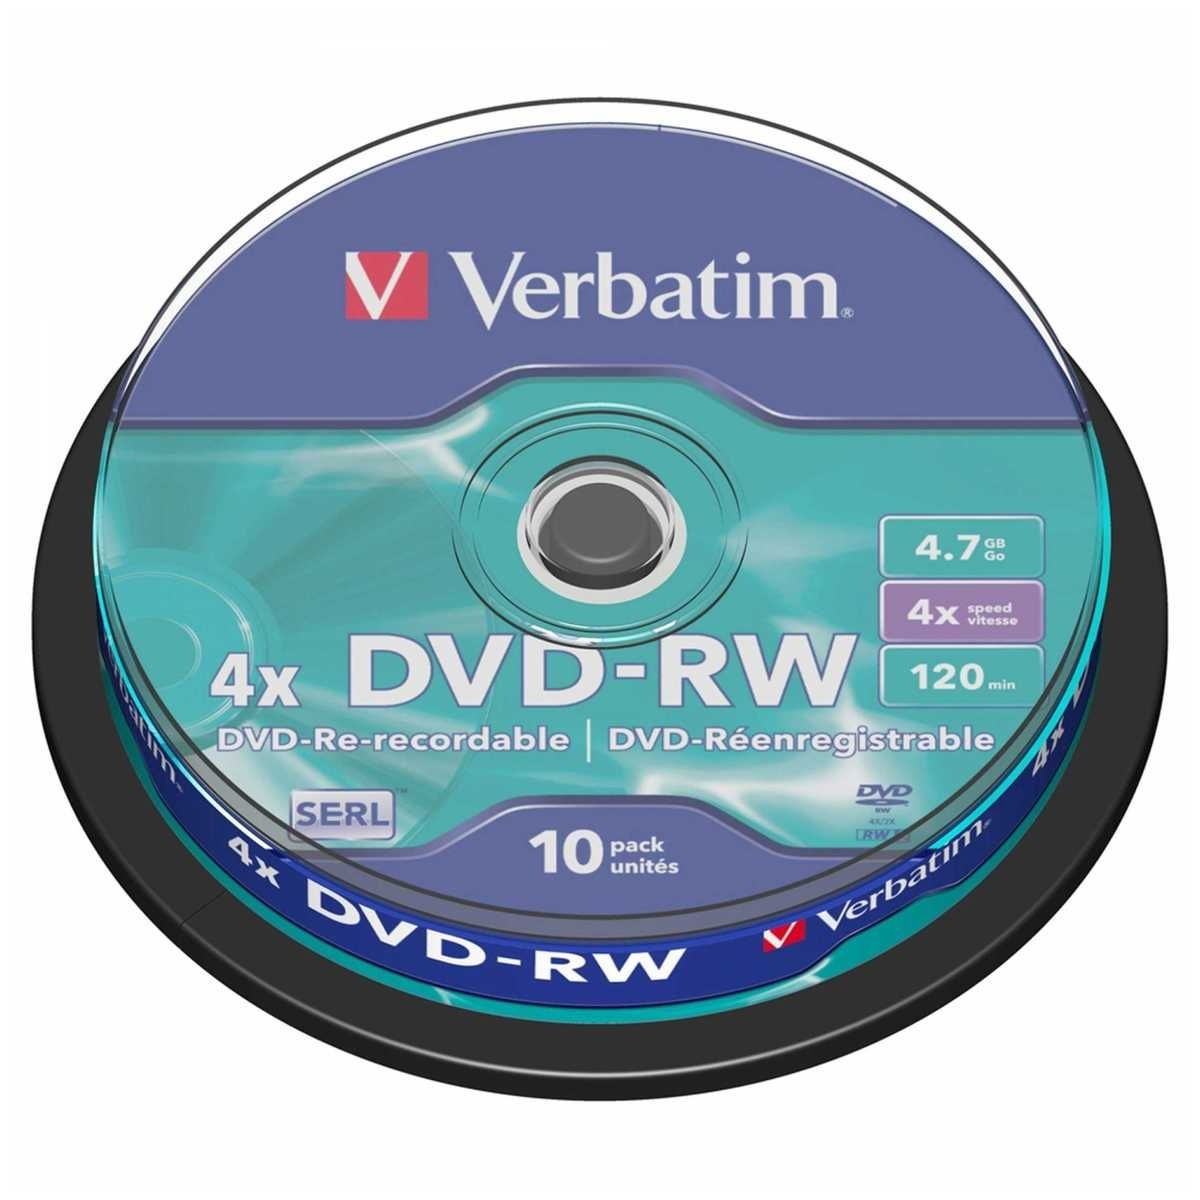 Dvd free strip ware